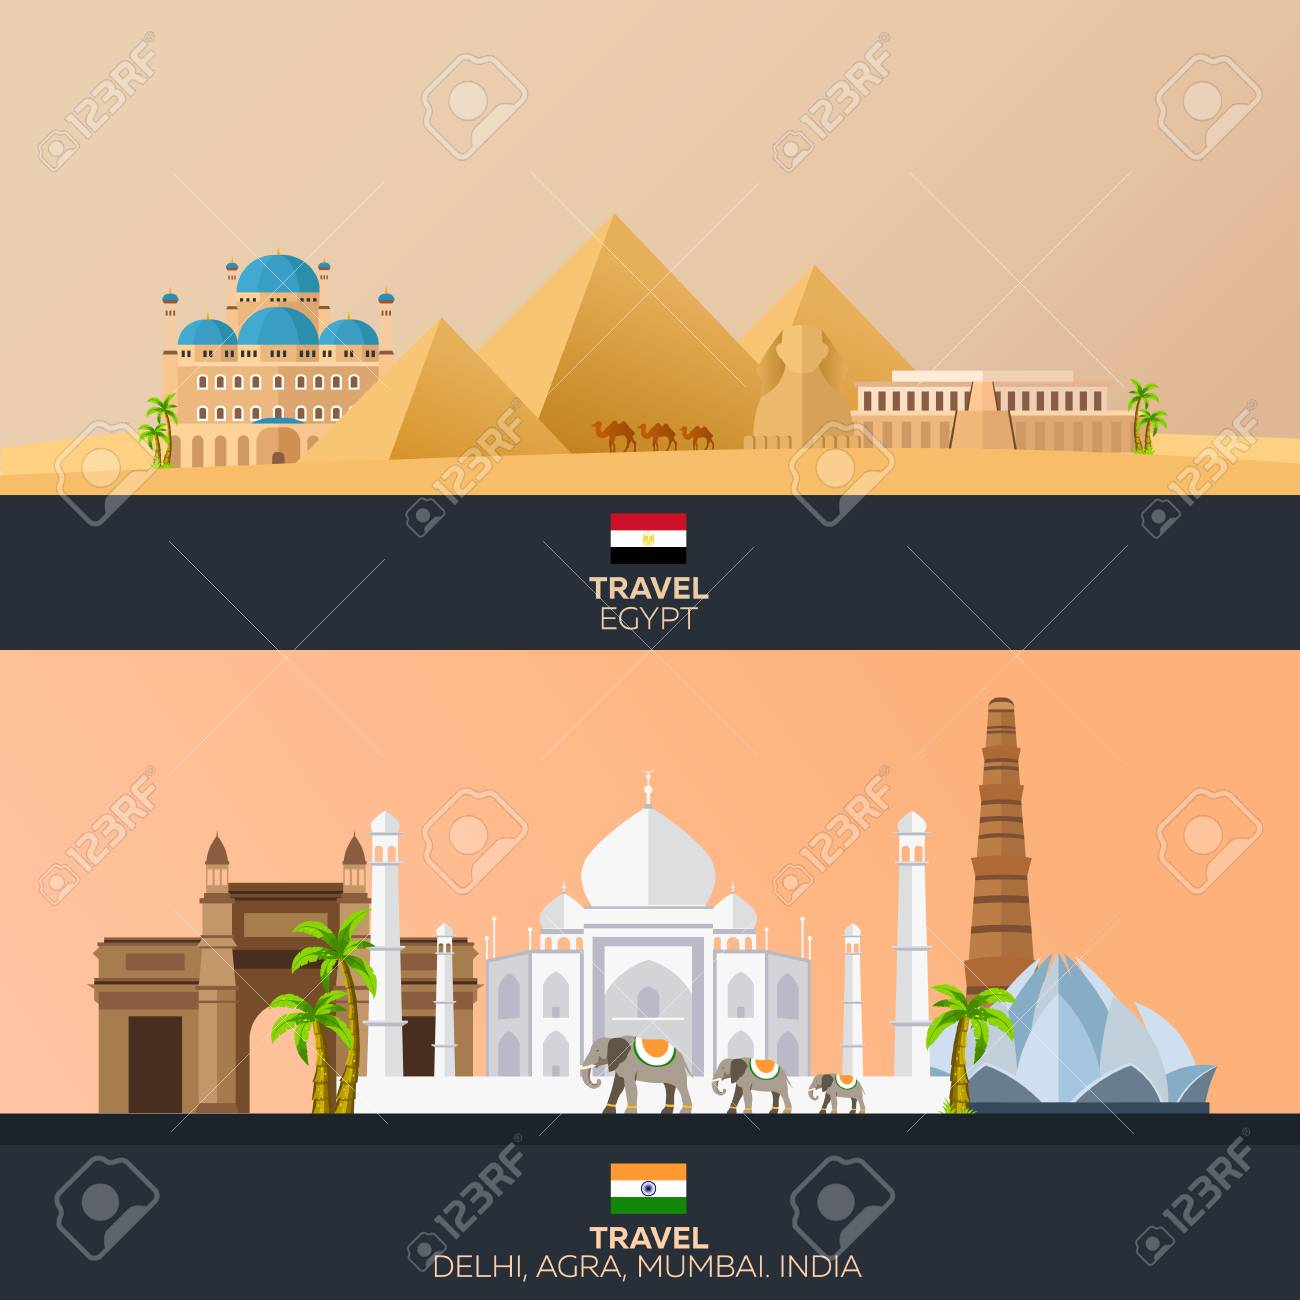 Egypt And India Tourism Travelling Illustration Modern Flat Royalty Free Cliparts Vectors And Stock Illustration Image 62836977